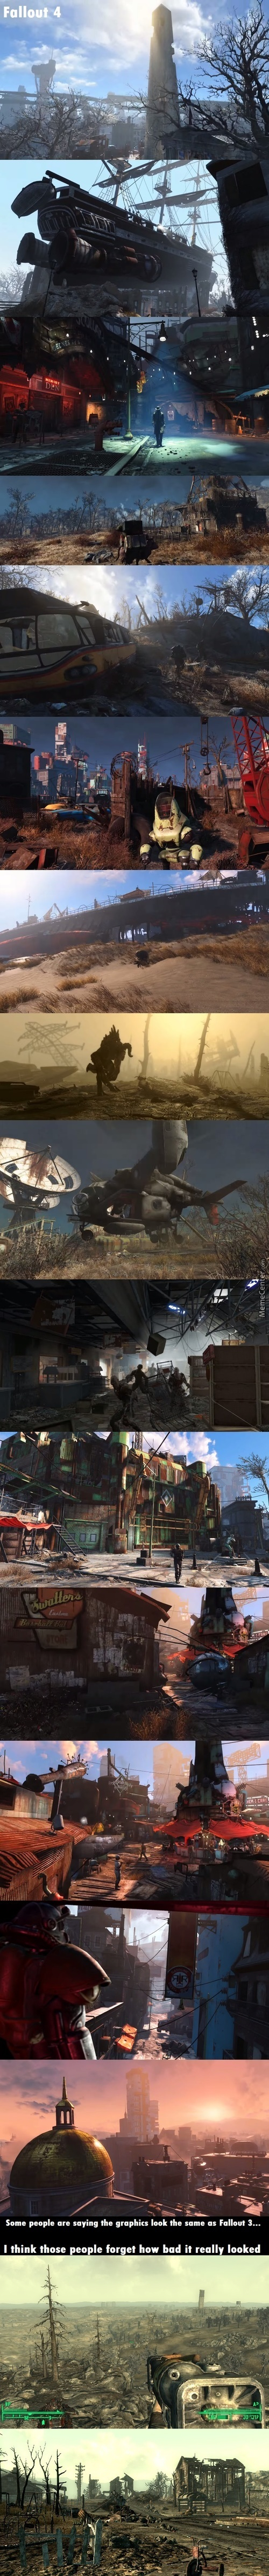 Fallout 4 Apparently Looks No Better Then Fallout 3